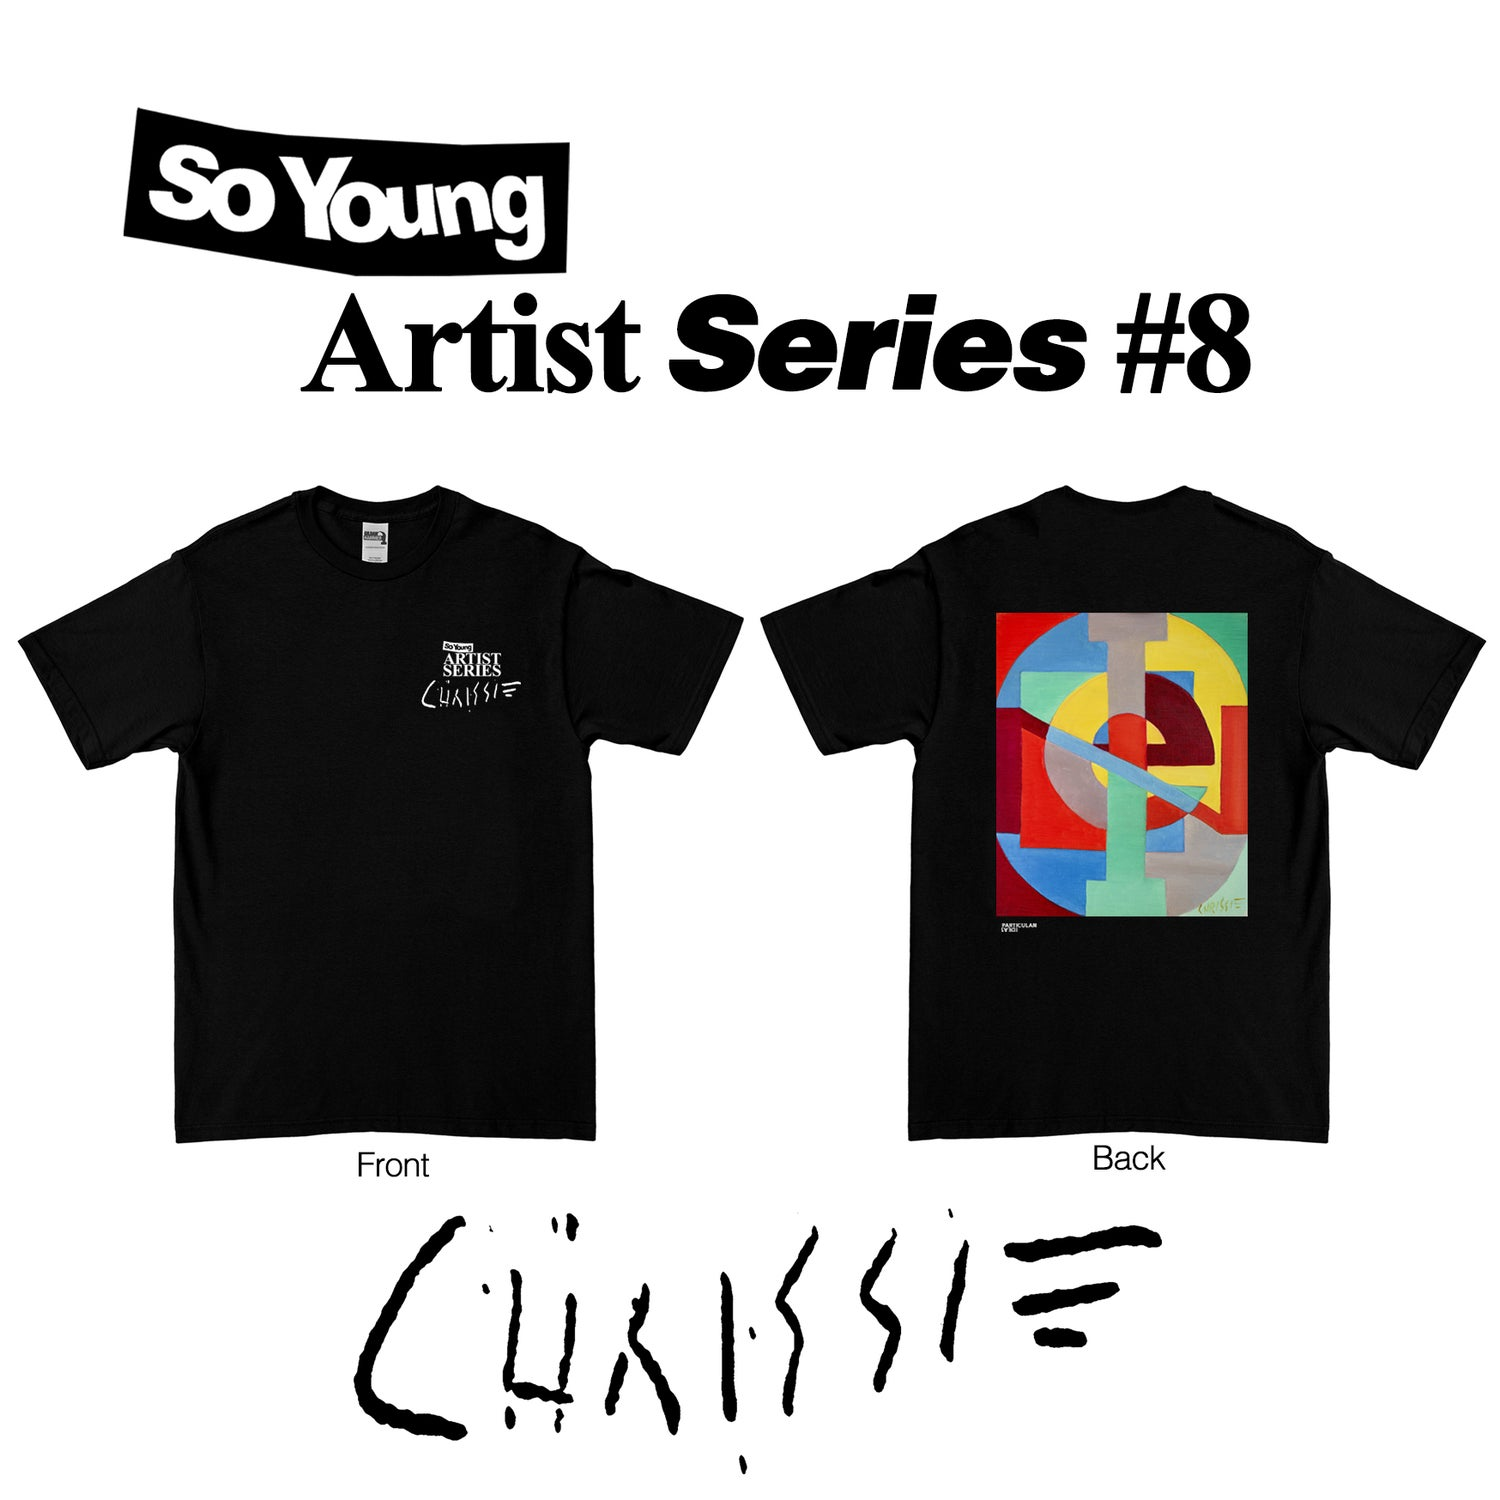 Image of Chrissie Hynde Artist Series T-Shirt PRE ORDER